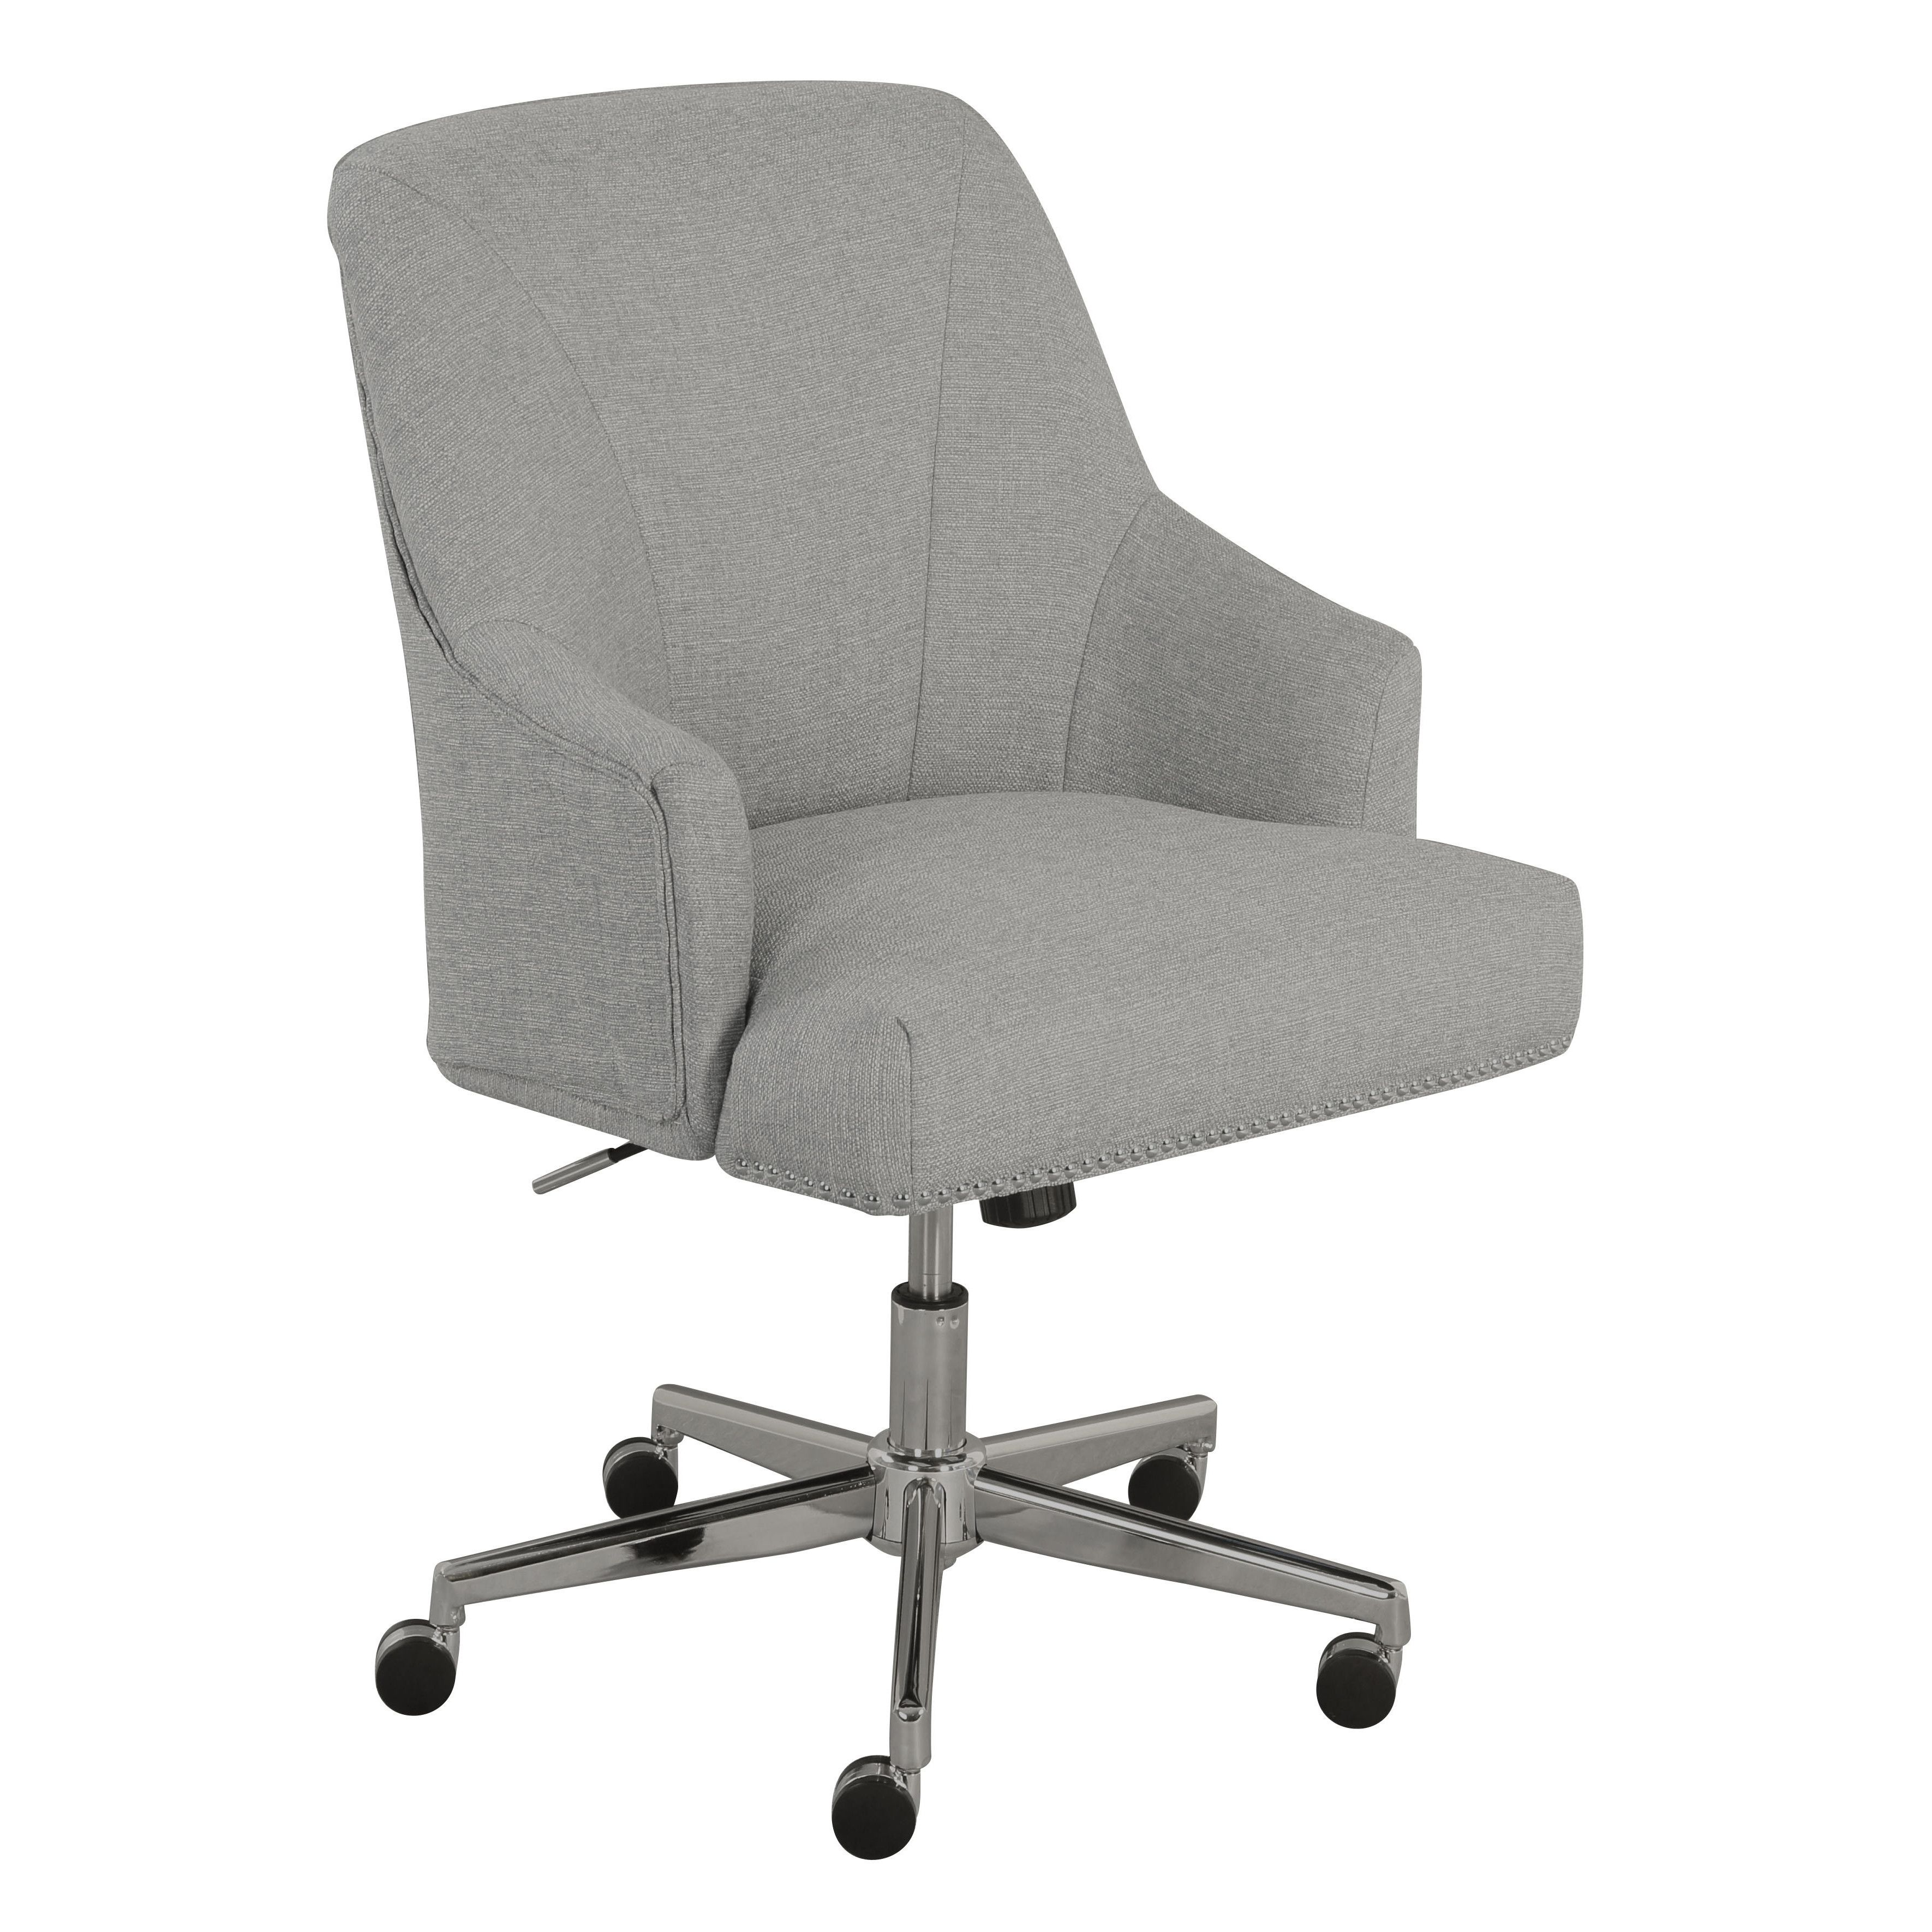 Serta at Home Serta Leighton Mid Back Desk Chair & Reviews